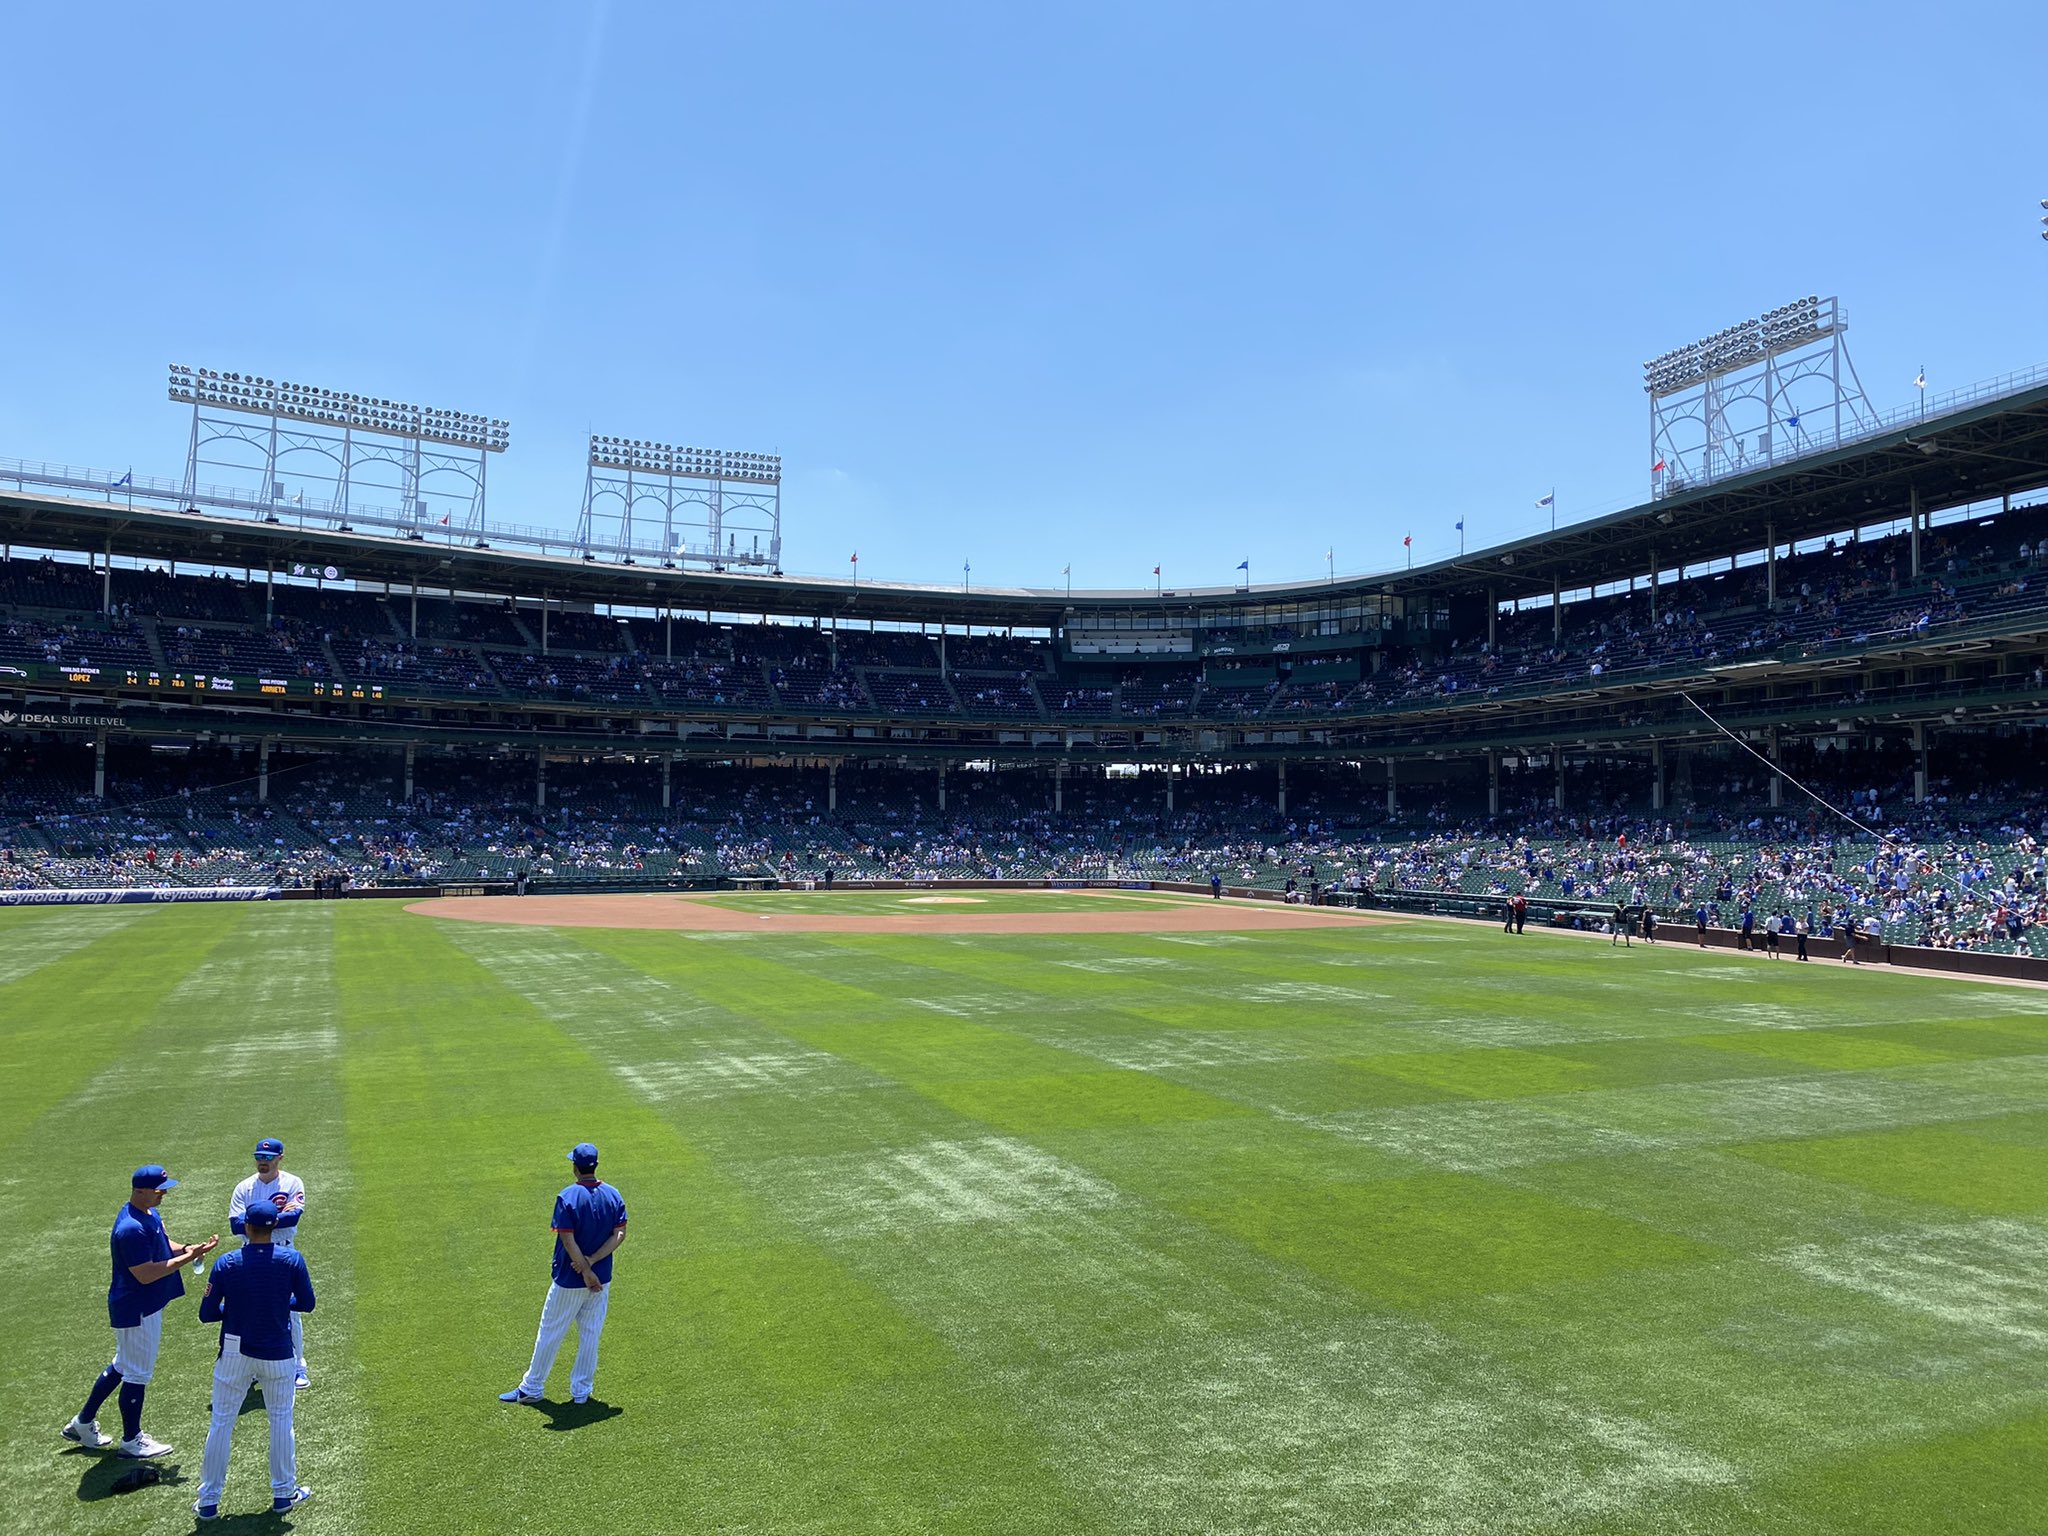 A view of Wrigley Field from the bleacher seats taken prior to a Marlins vs. Cubs game